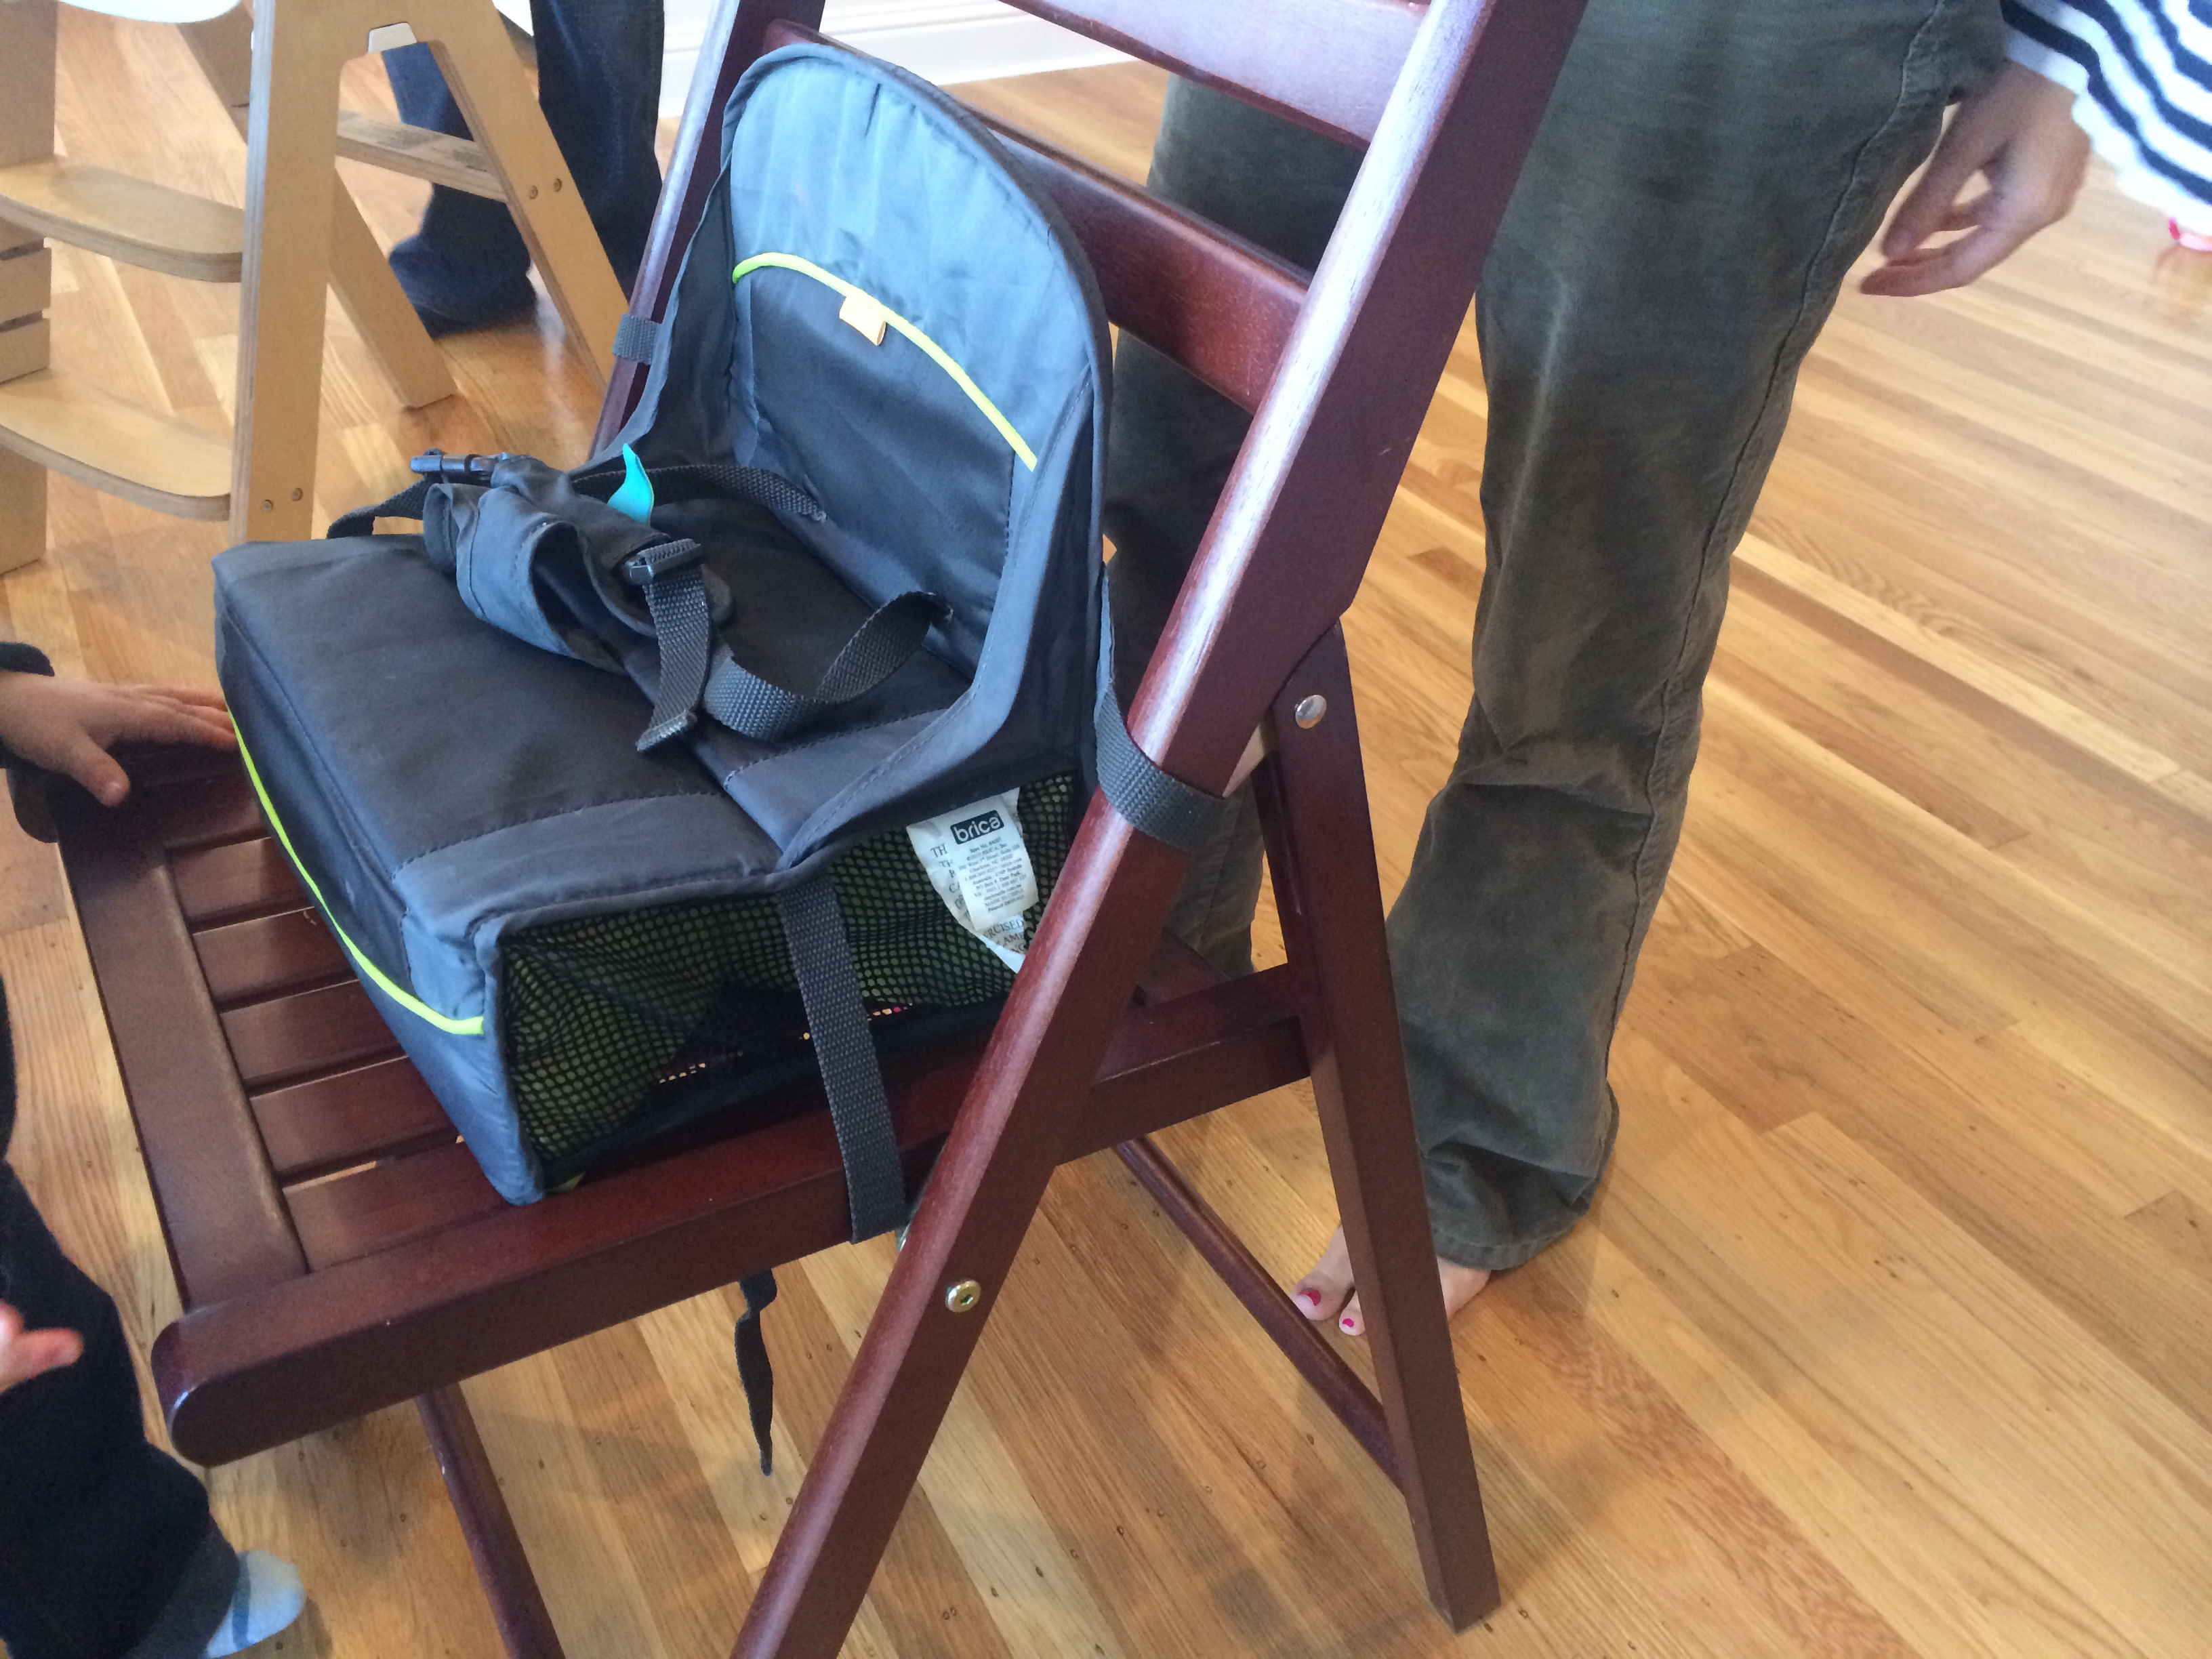 IMG_3449. The Brica booster seat & Todayu0027s Hint: A Great (and Cheap) Travel u201cHigh Chairu201d u2013 Hint Mama